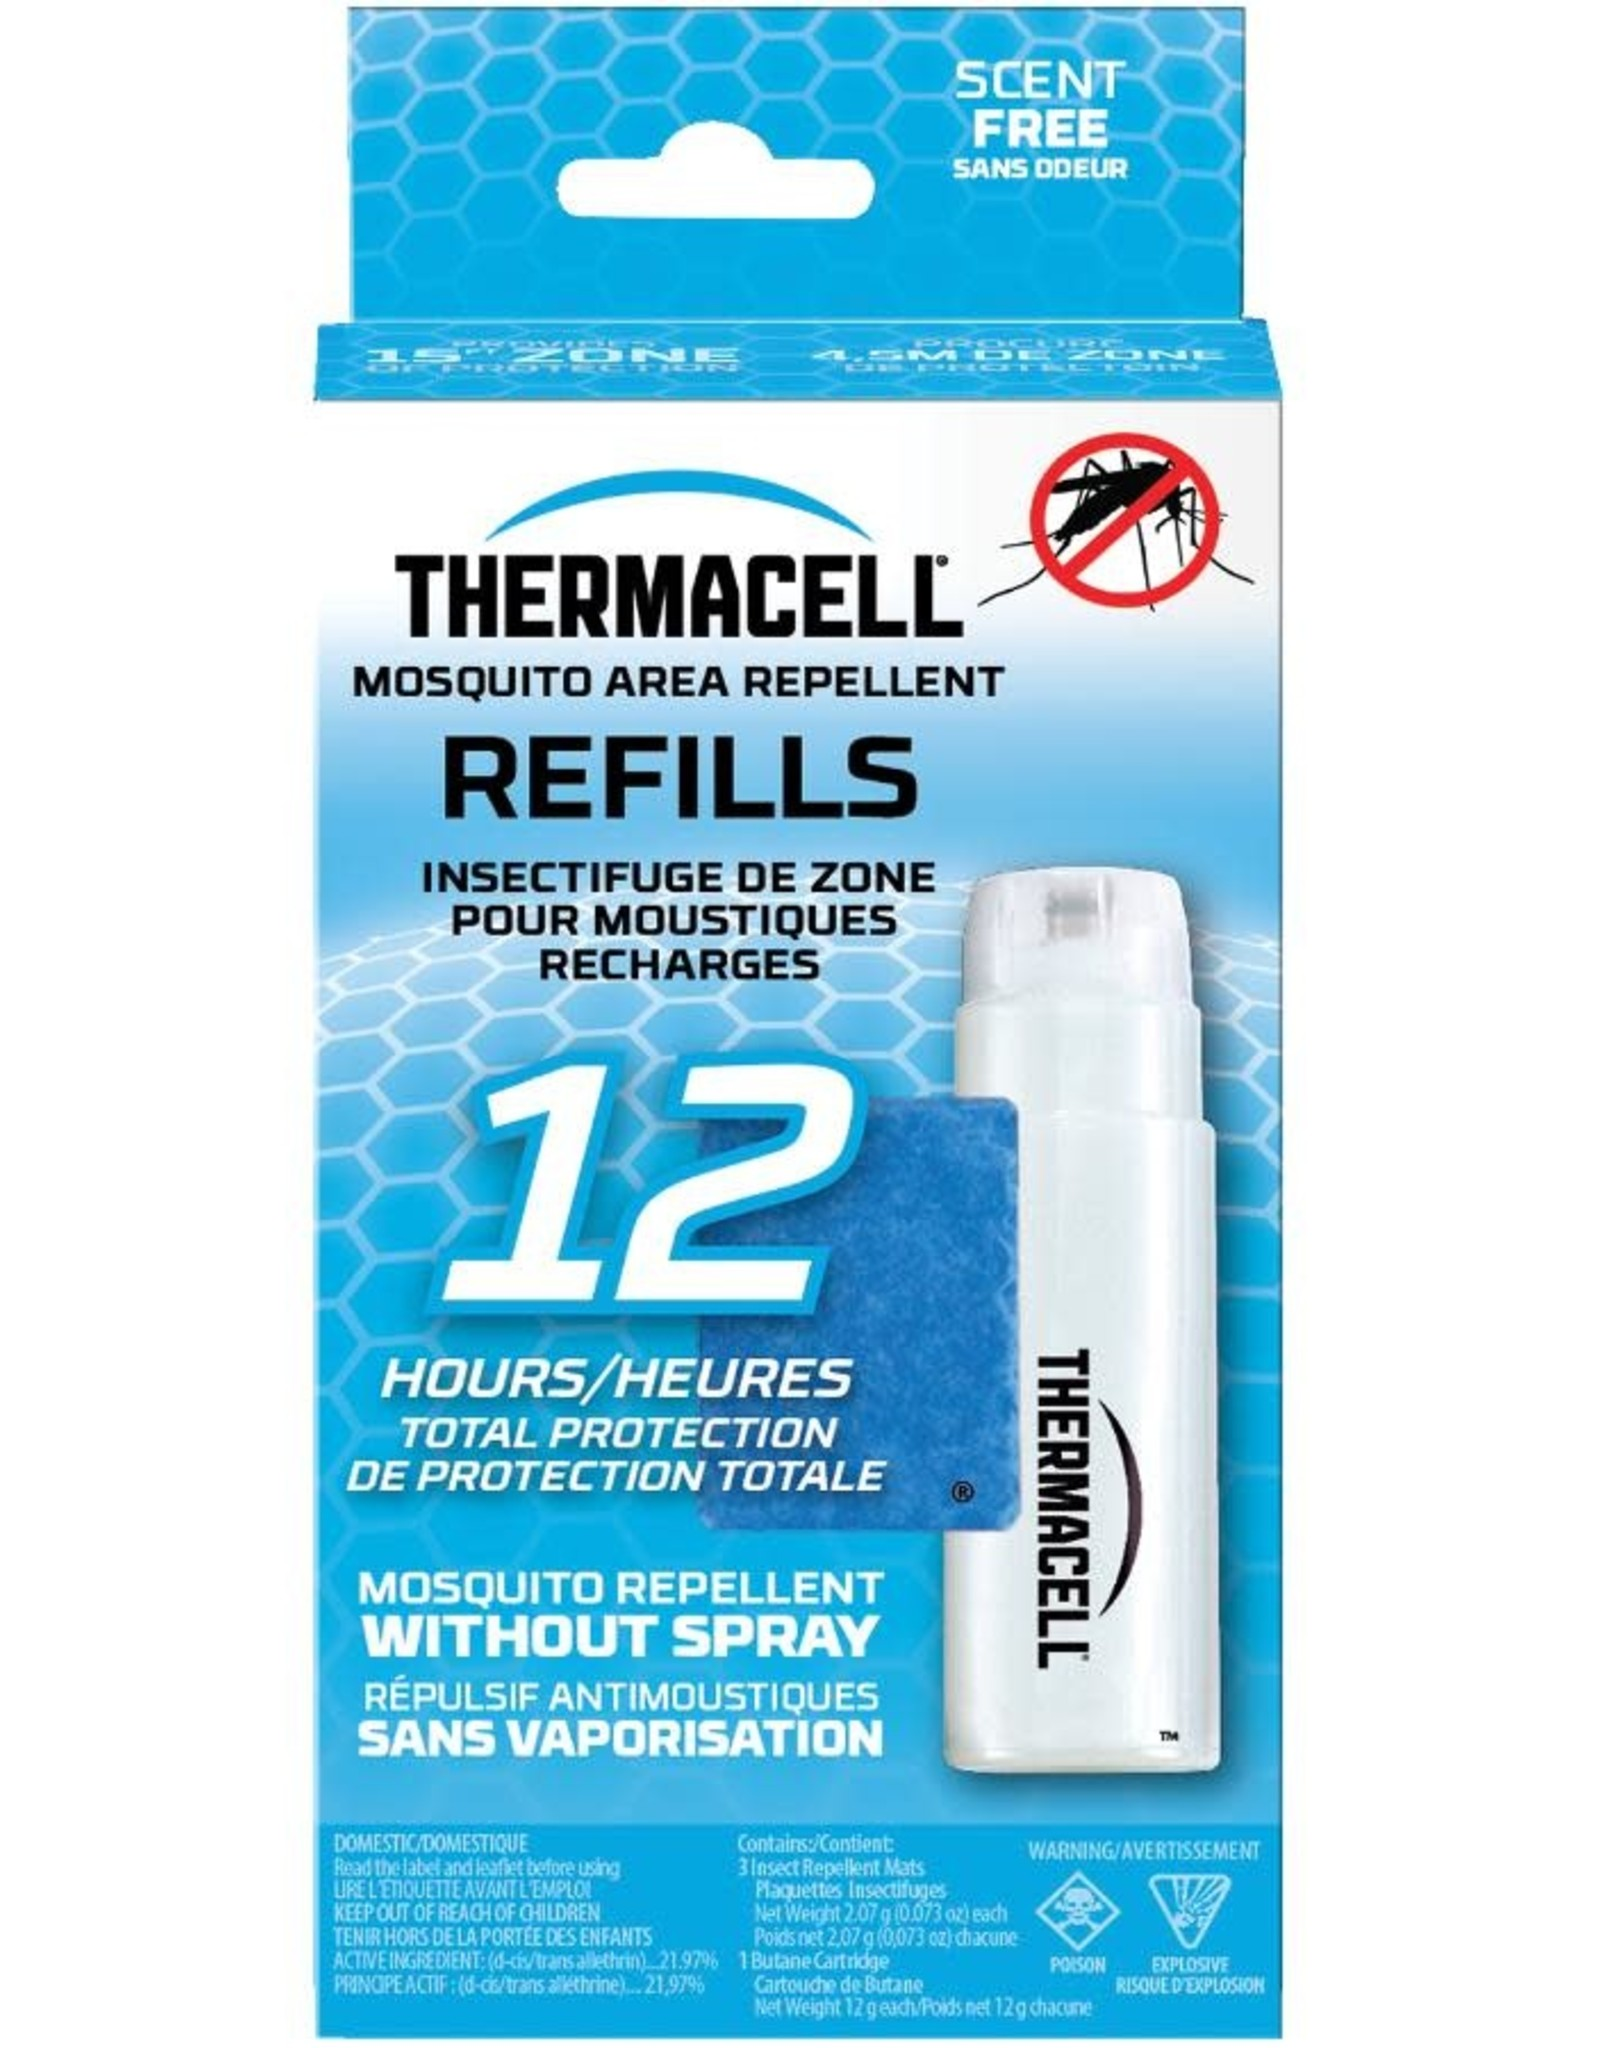 thermacell THERMACELL MOSQUITO AREA REPELLENT REFILLS  ( 12 hours )